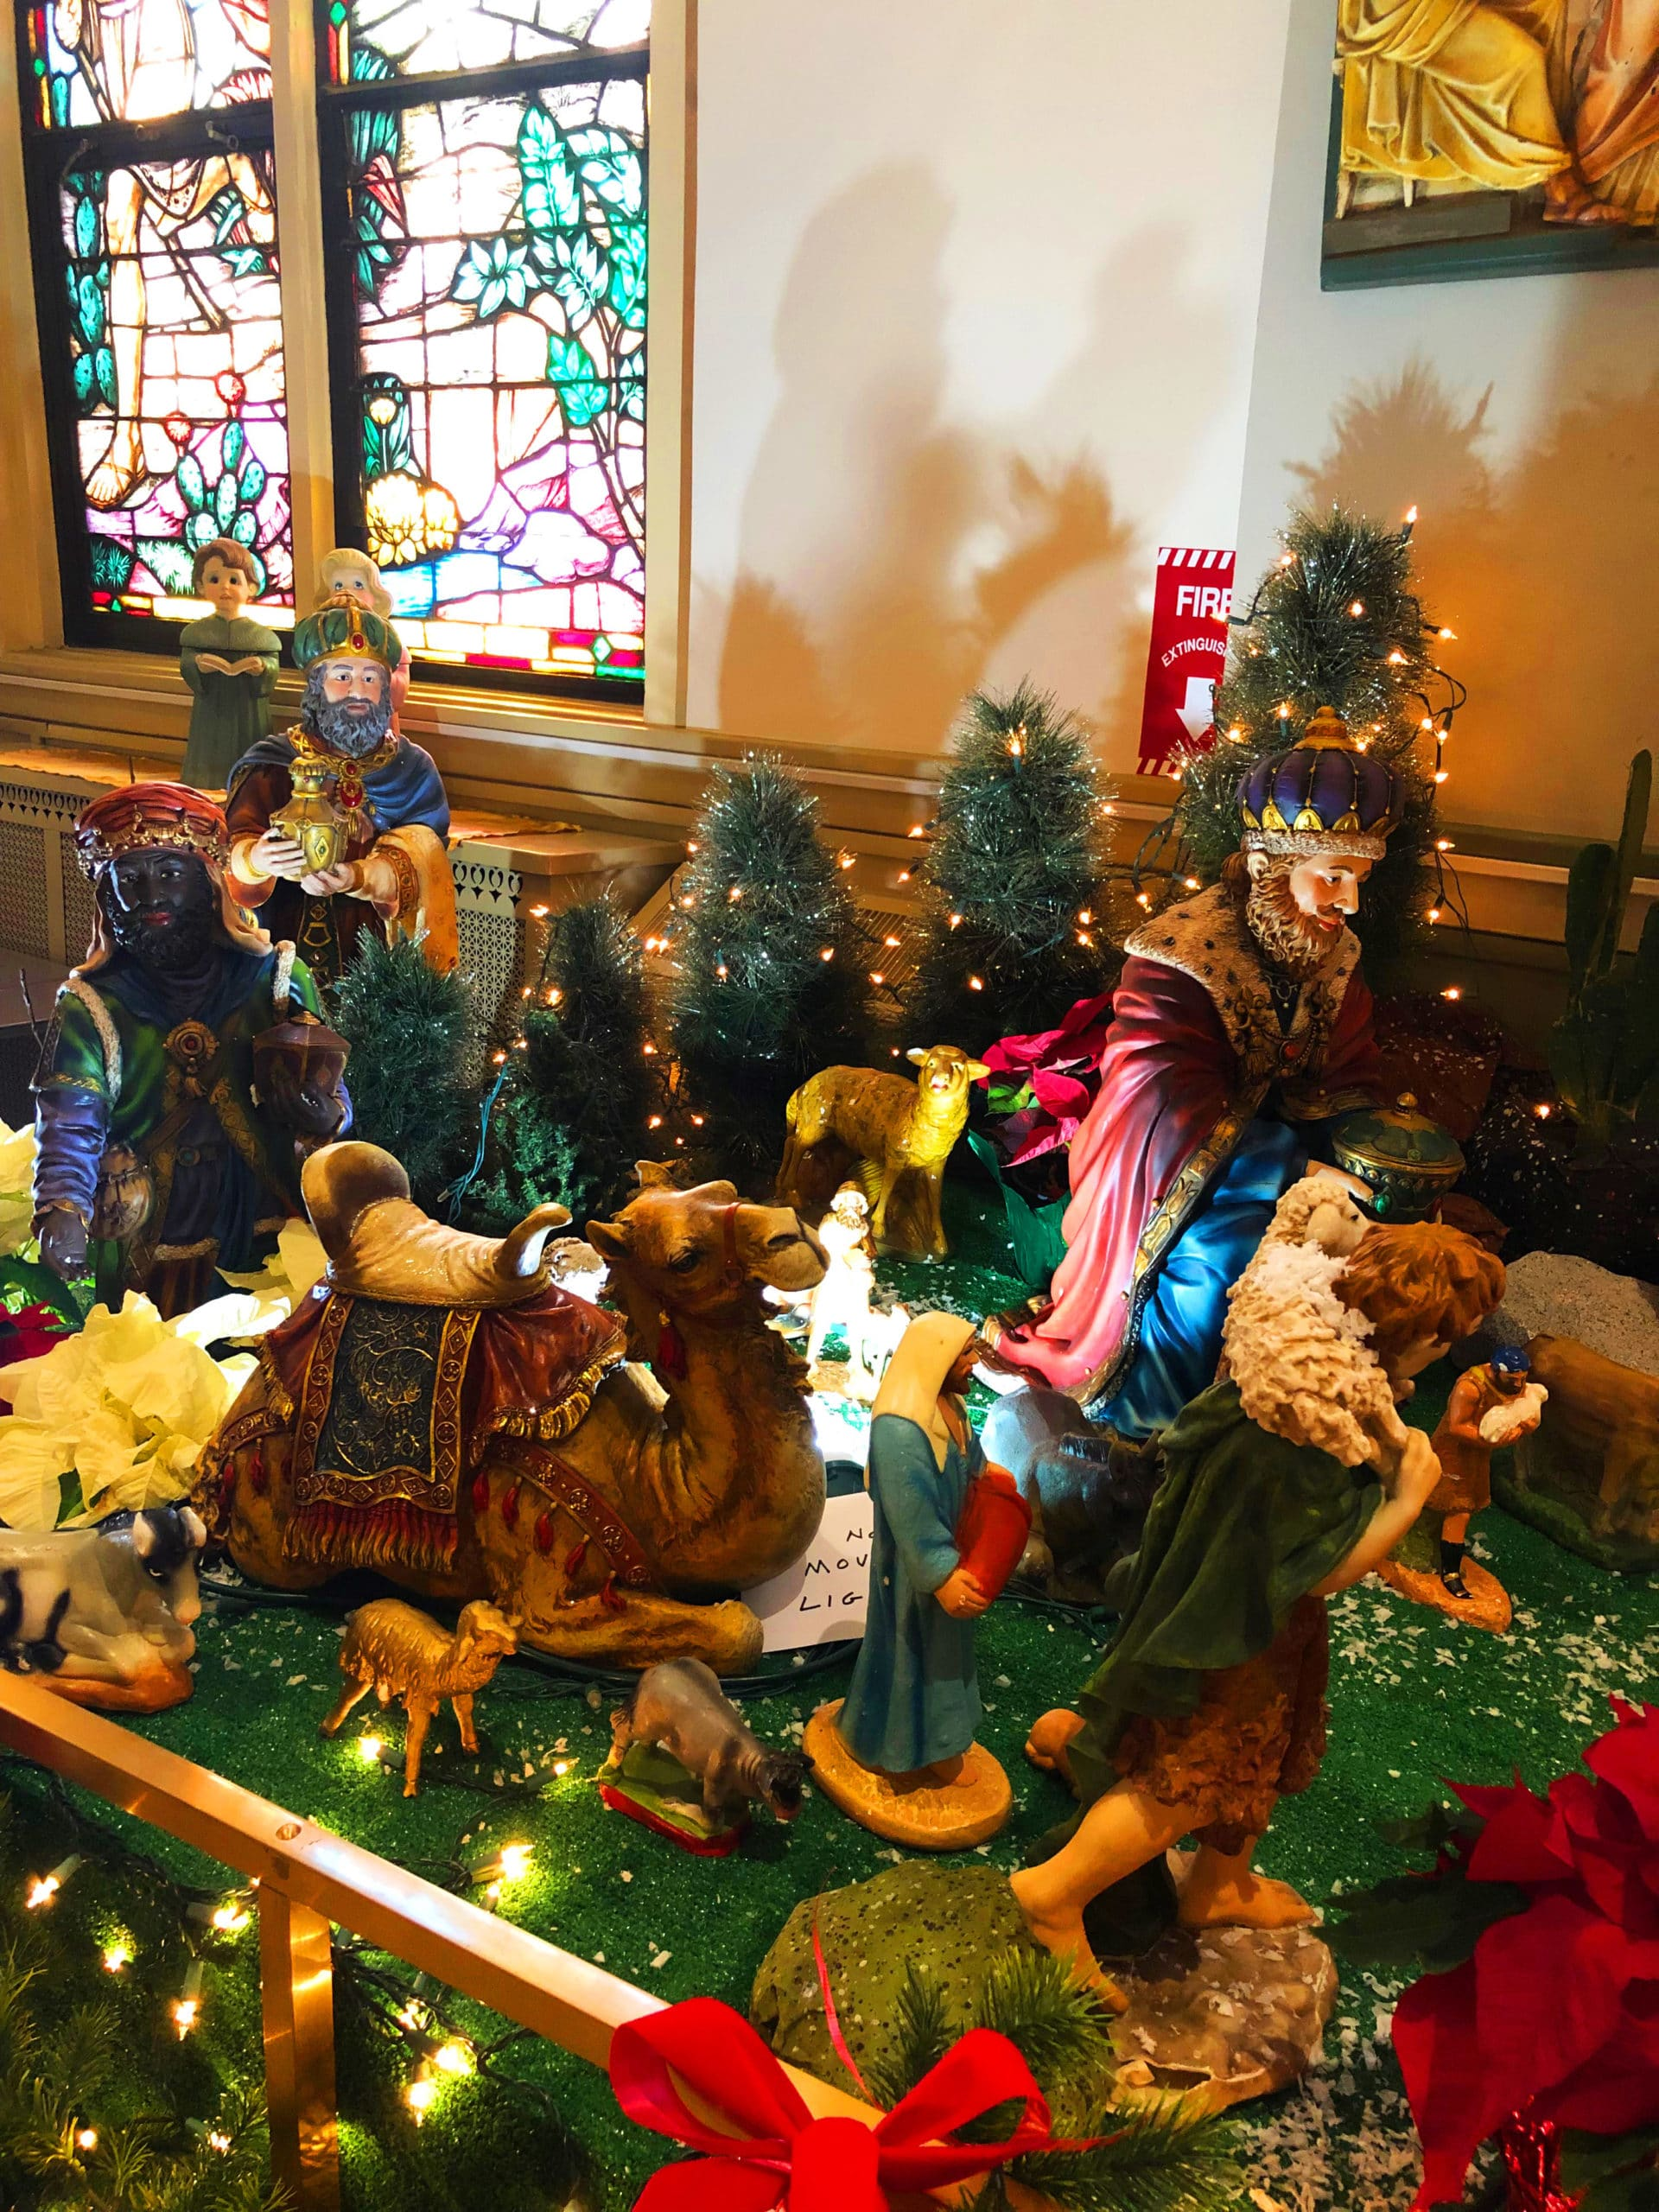 Nativity scene at the Shrine